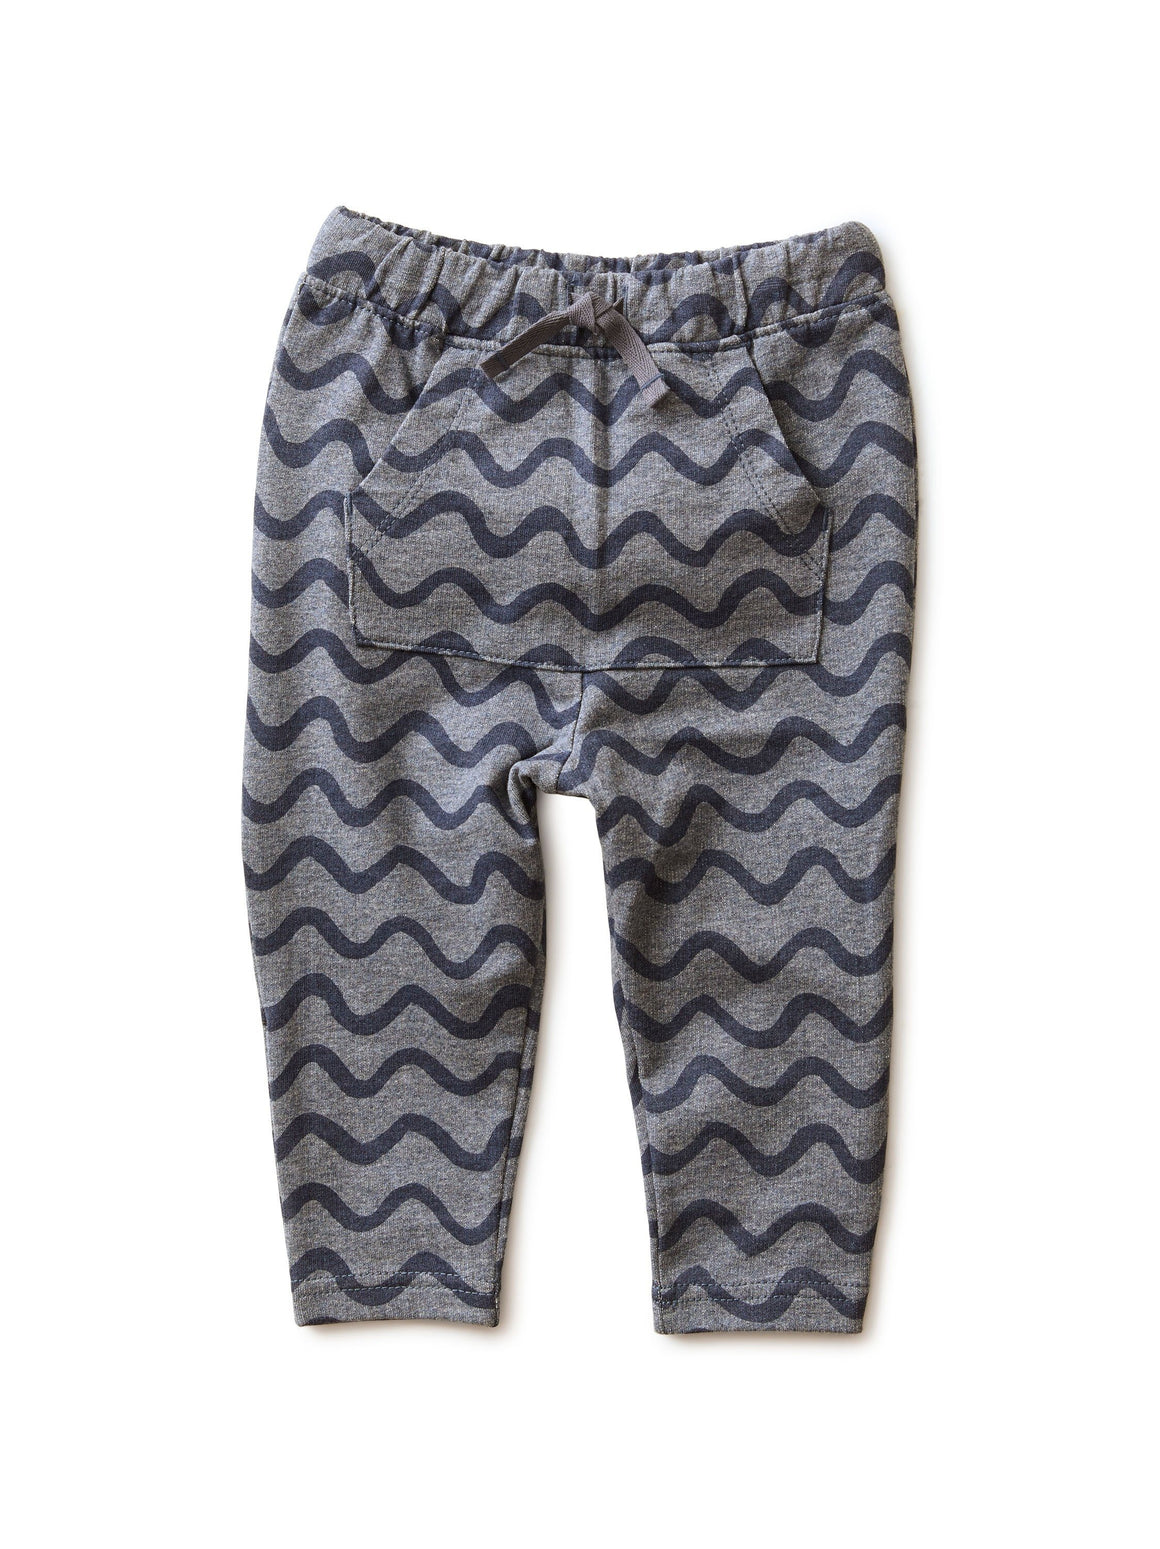 20S42203-Y38 Tea Collection Aegean Waves Pocket O' Sunshine Baby Pants Pants Tea Collection